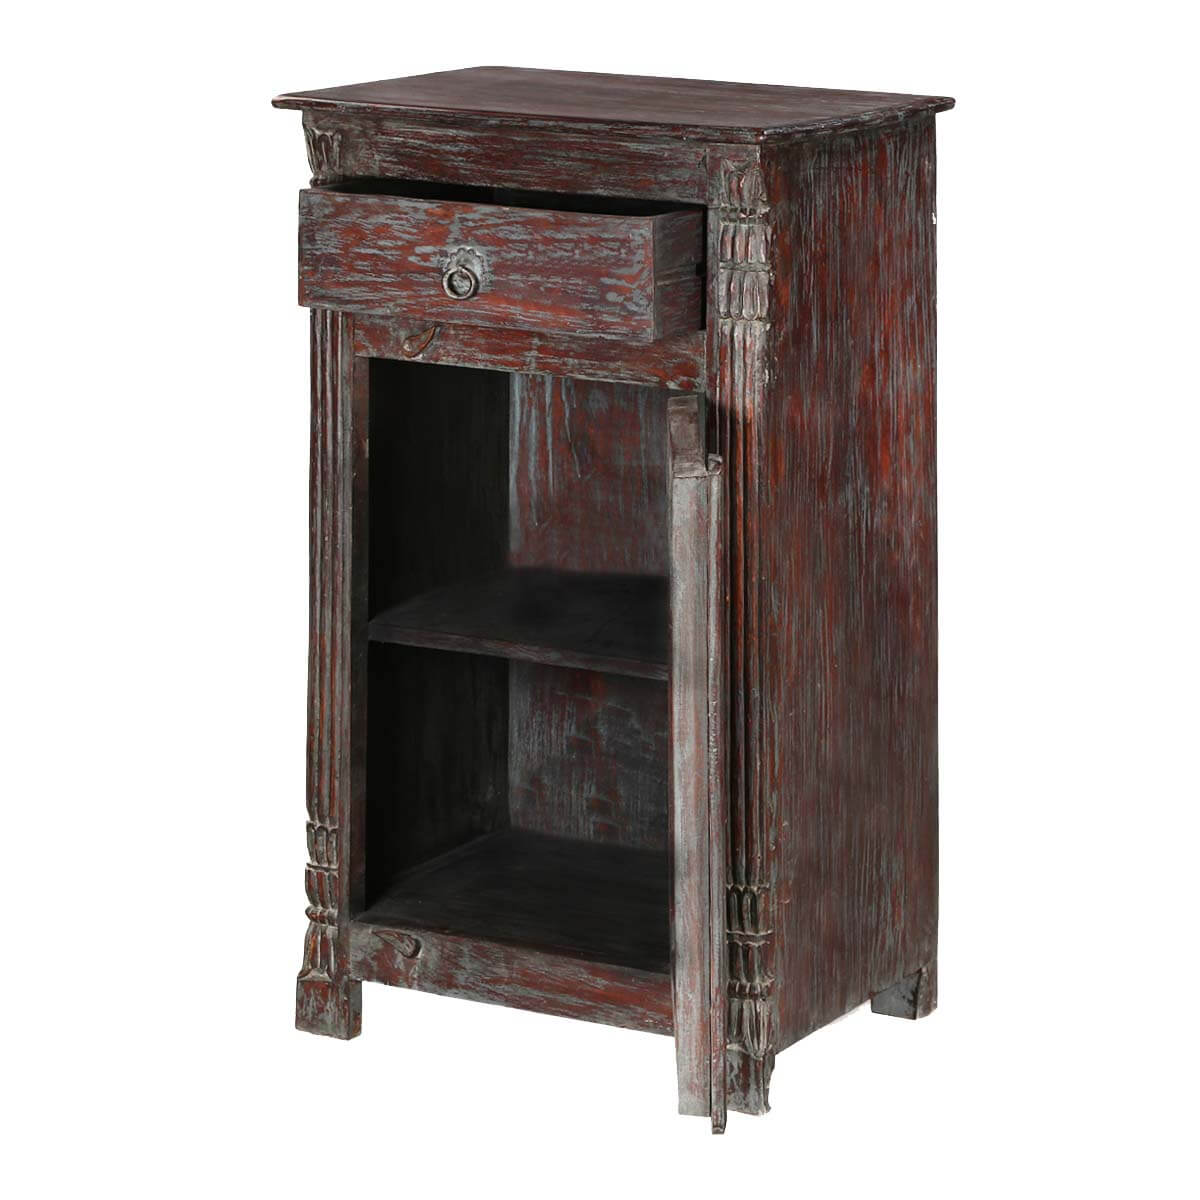 Chartres rustic solid wood single door 1 drawer accent for Rustic wood nightstand